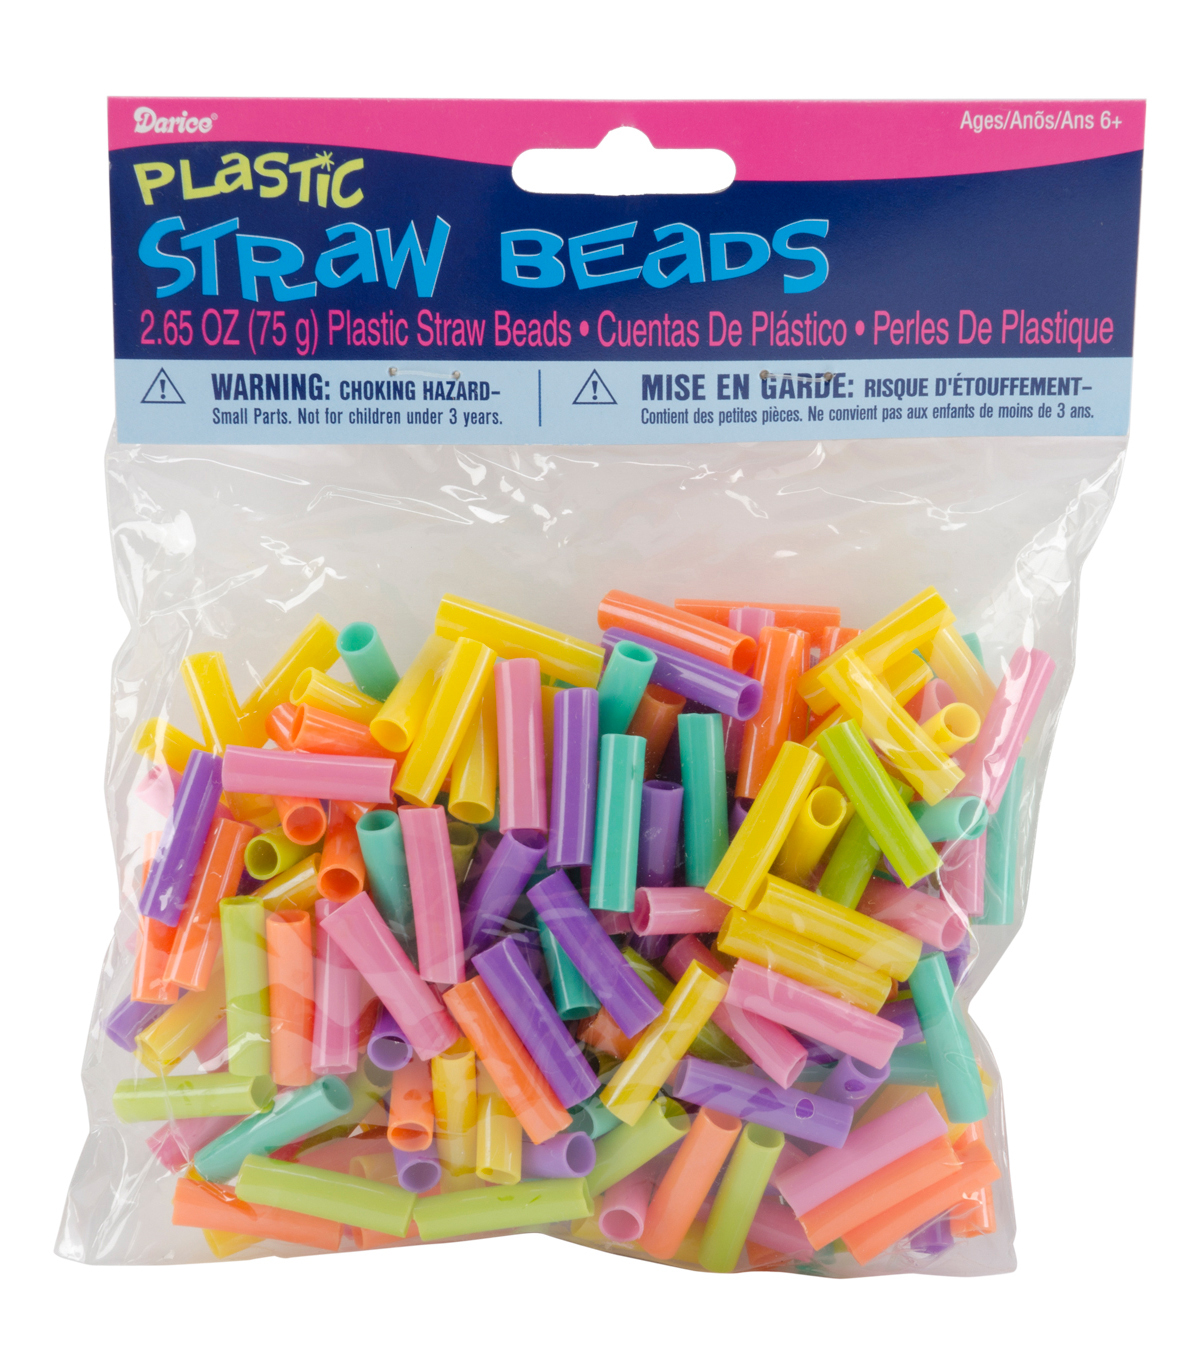 Plastic Straw Beads 75g/Pkg-Assorted Colors